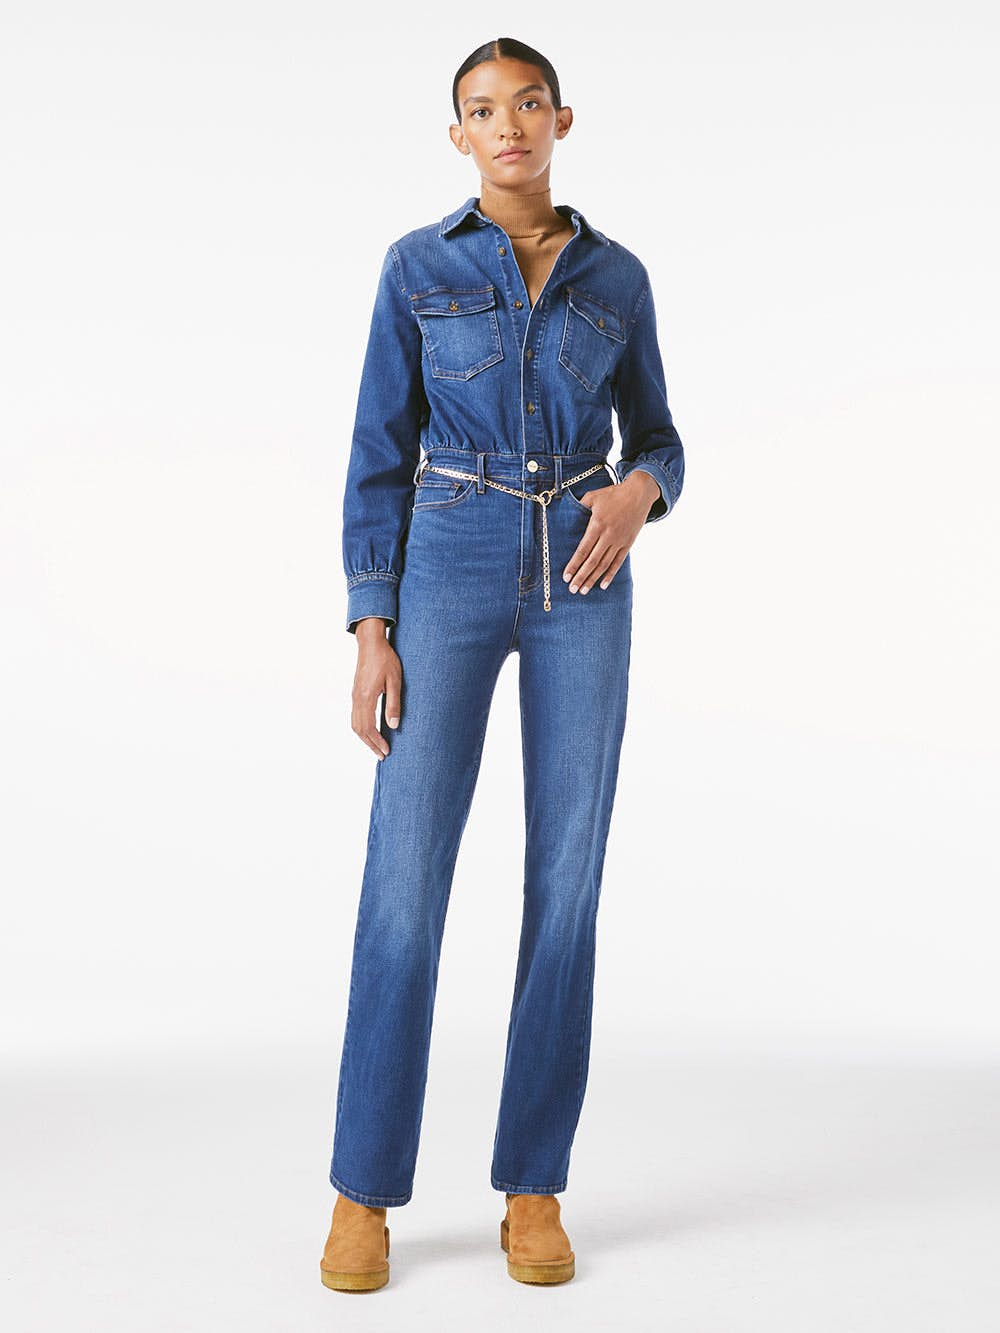 jumpsuit front full body view 2